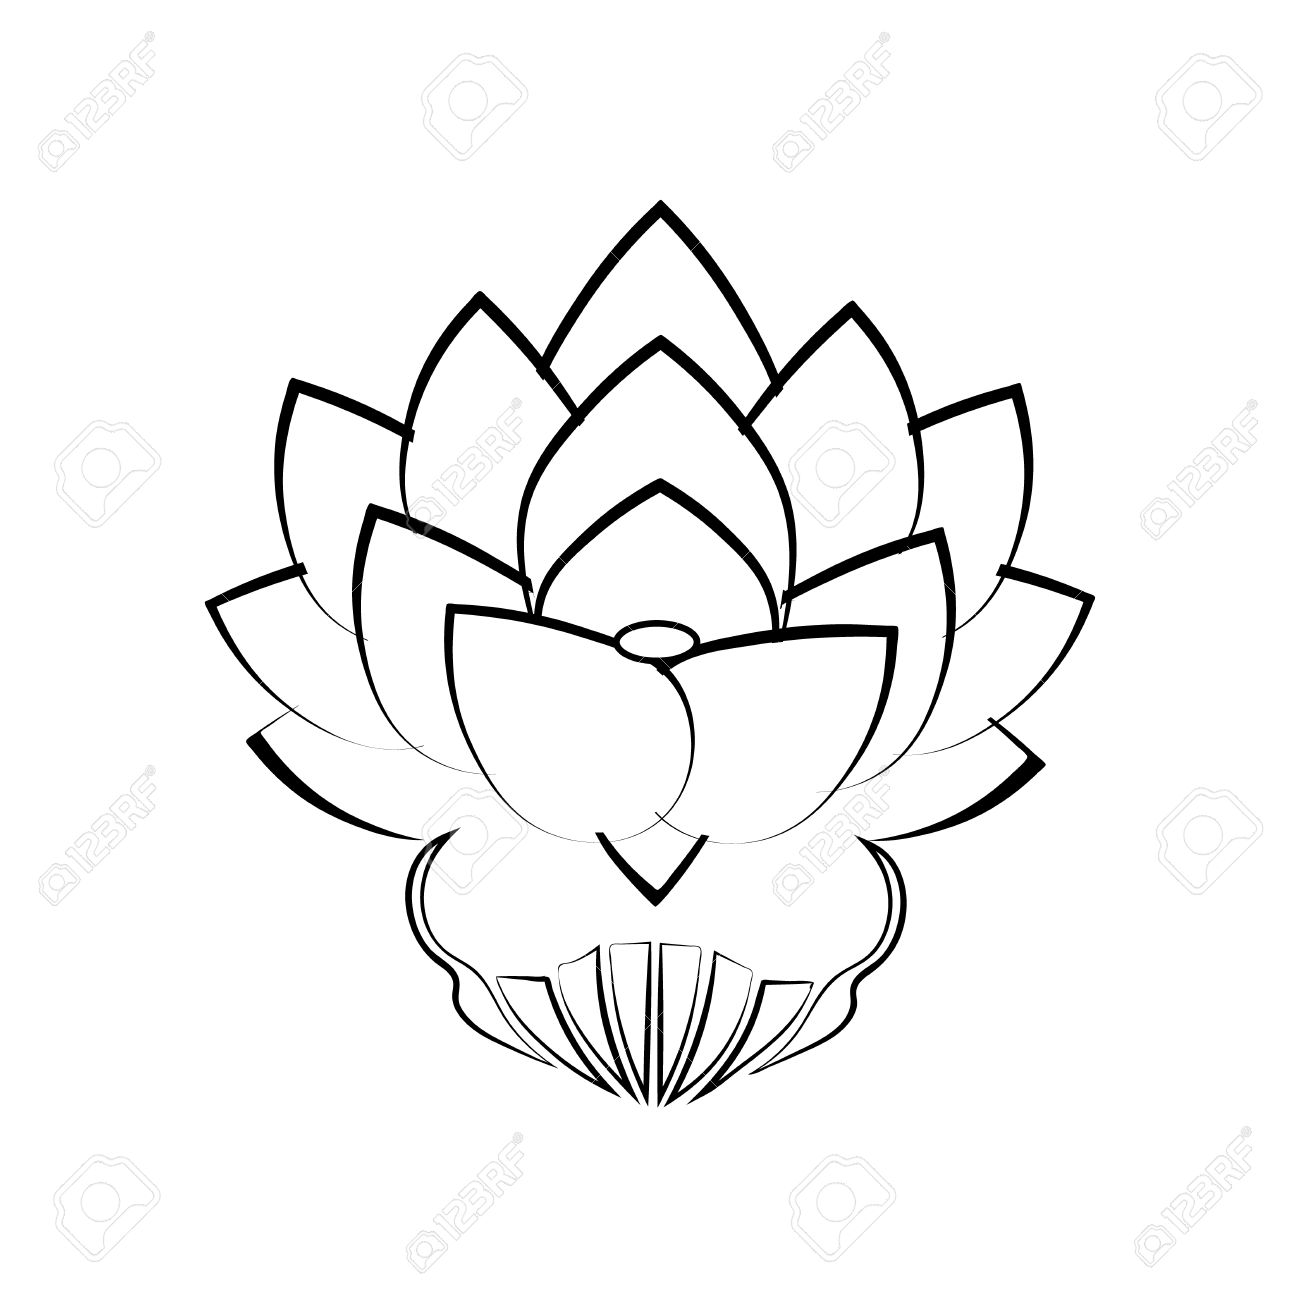 Black Stylized Image Of A Lotus Flower On A White Background